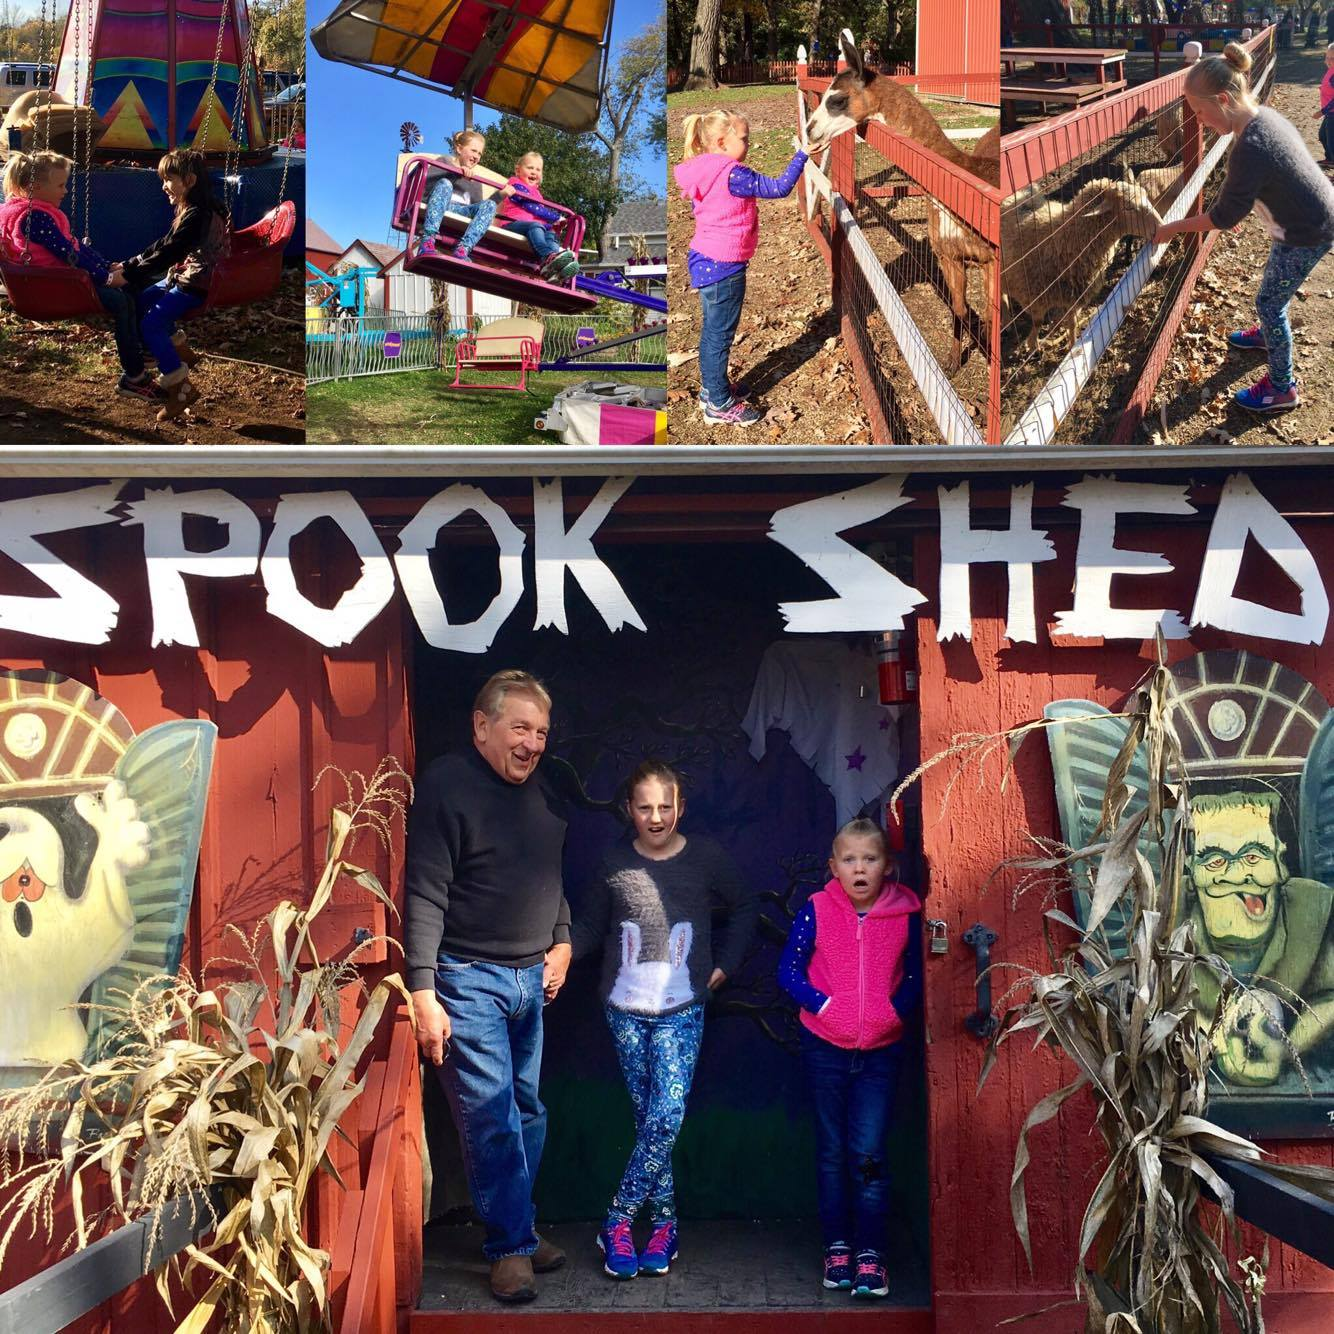 spook shed collage